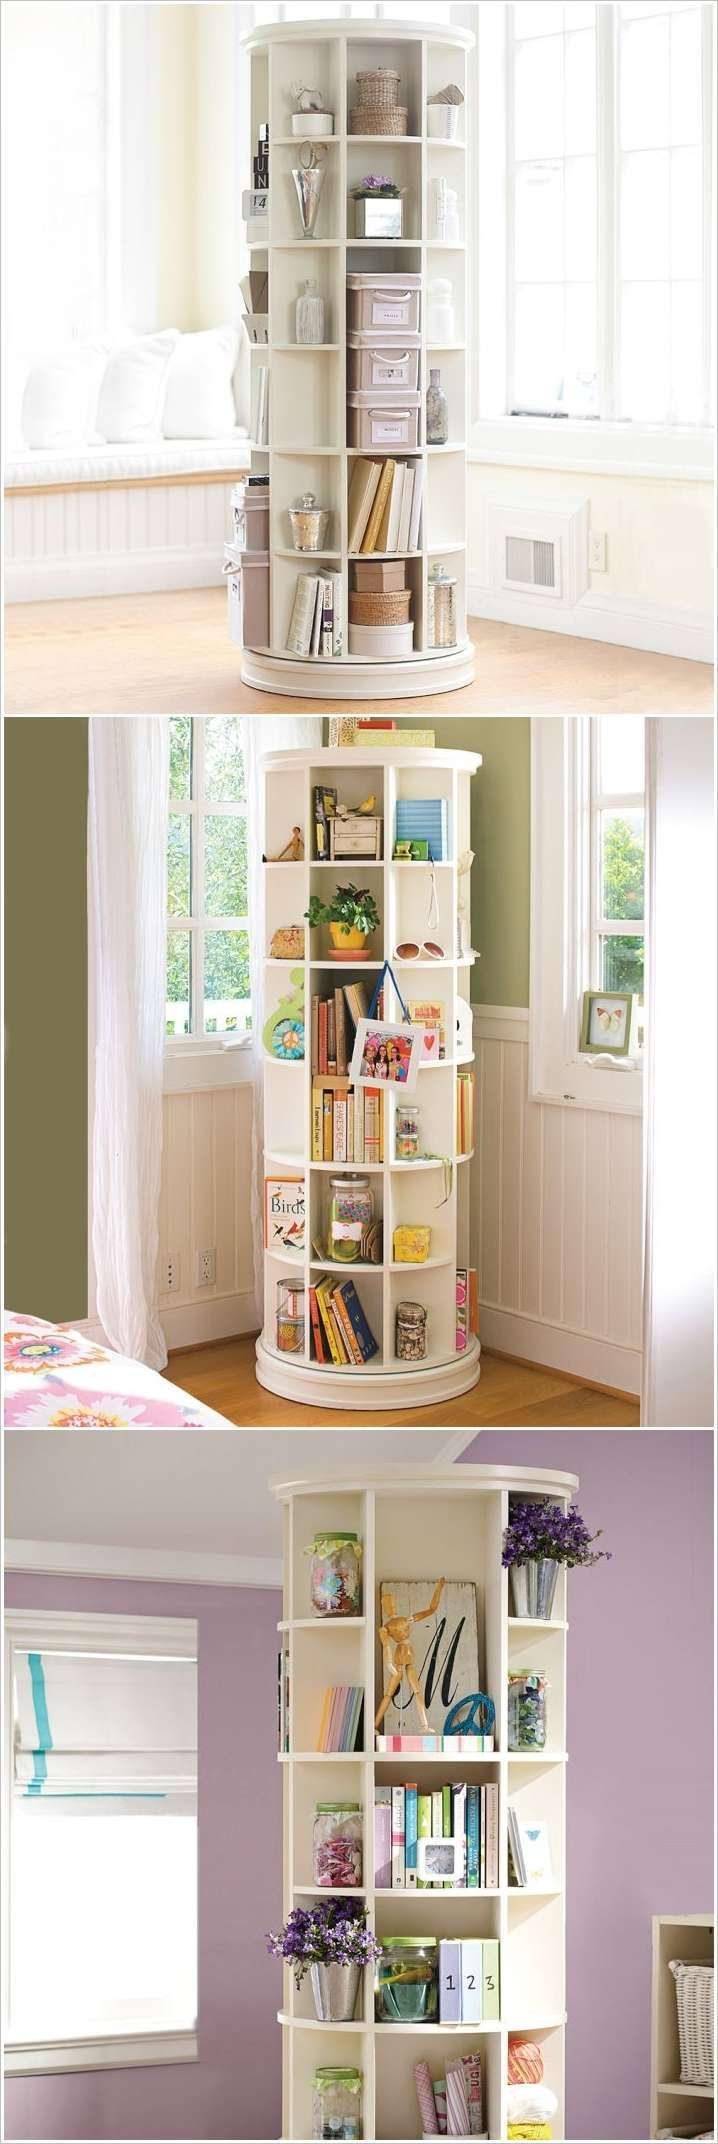 best 25 small teen bedrooms ideas on pinterest small teen room a revolving bookcase loaded with storage space plus more space saving ideas for